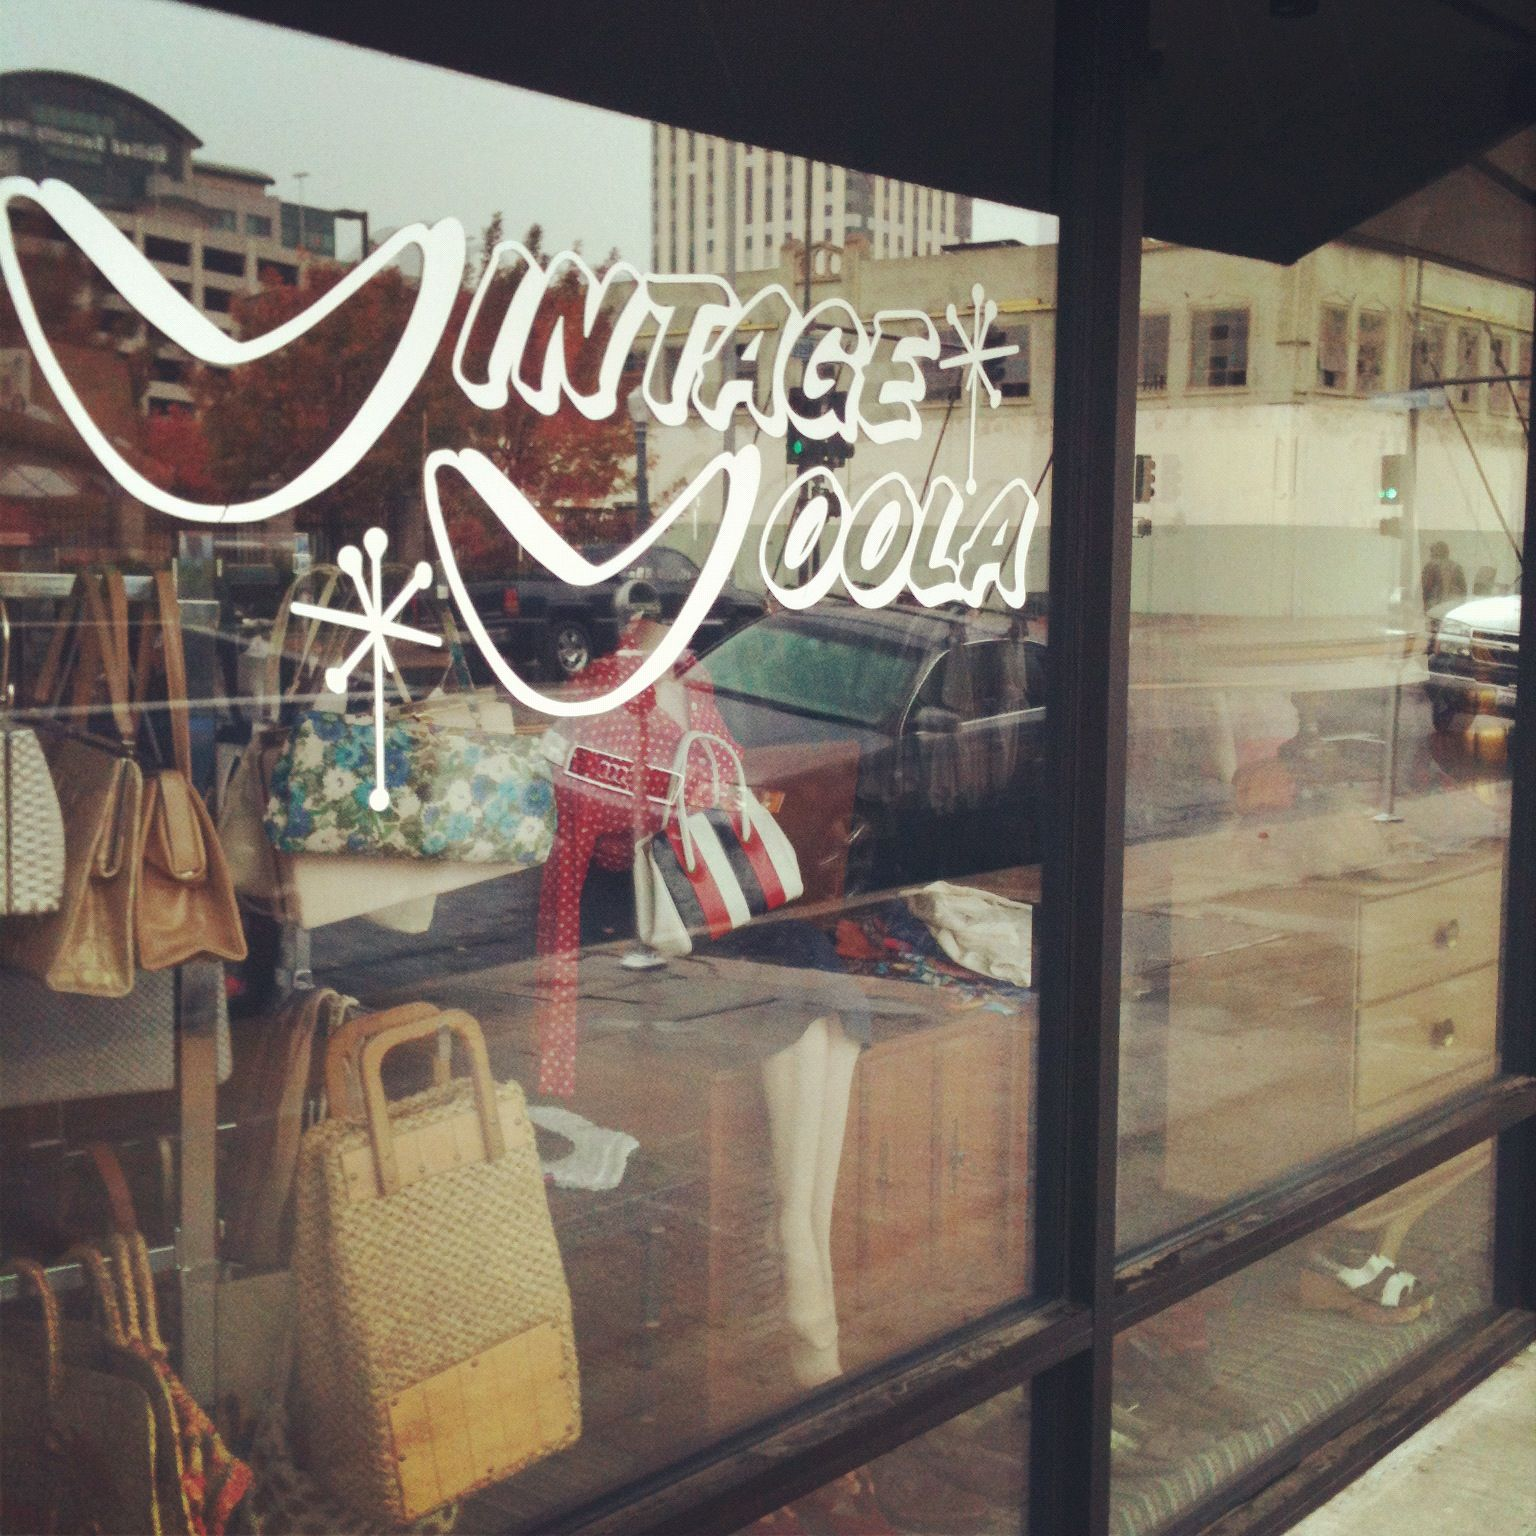 Vintage Voola Vintage Clothing Store Located On The Corner Of